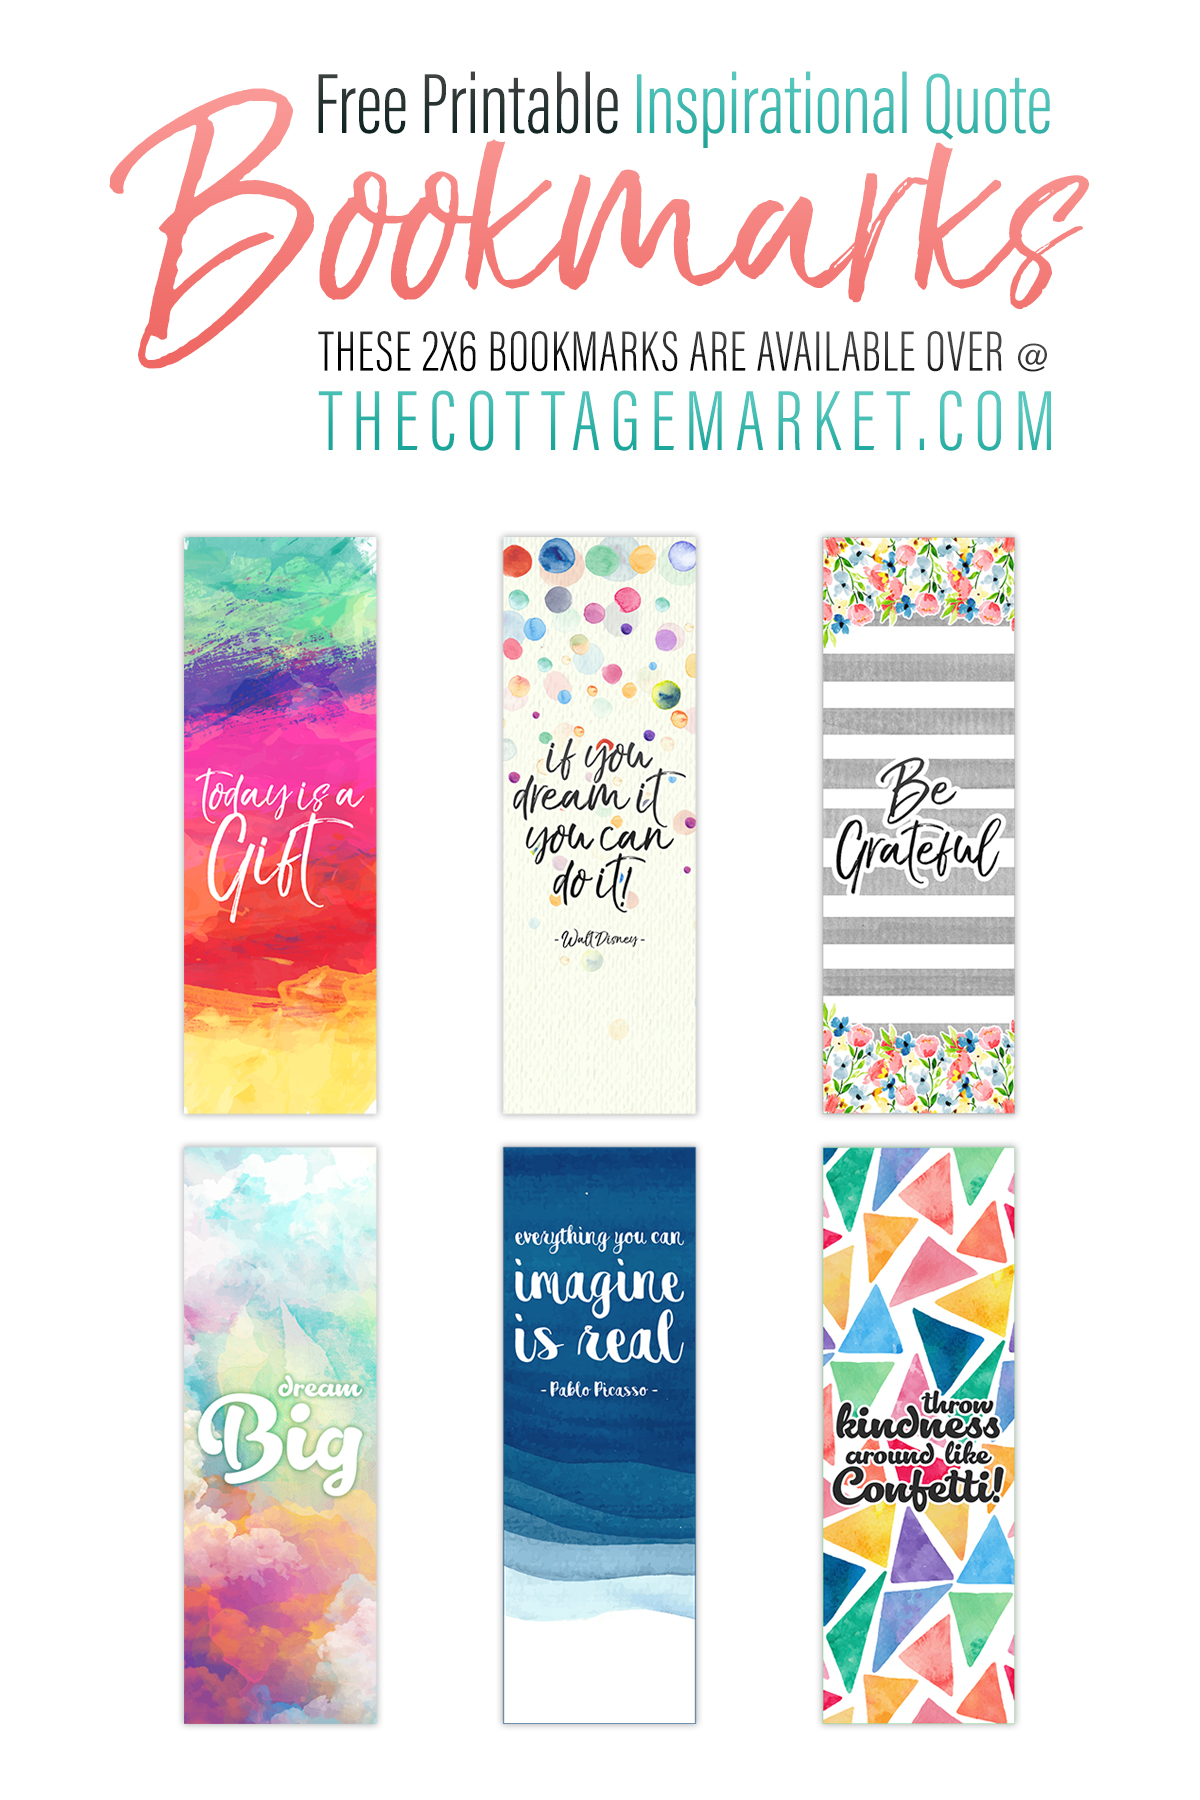 photograph regarding Free Printable Bookmarks With Quotes identify Totally free Printable Inspirational Estimate Bookmarks - The Cottage